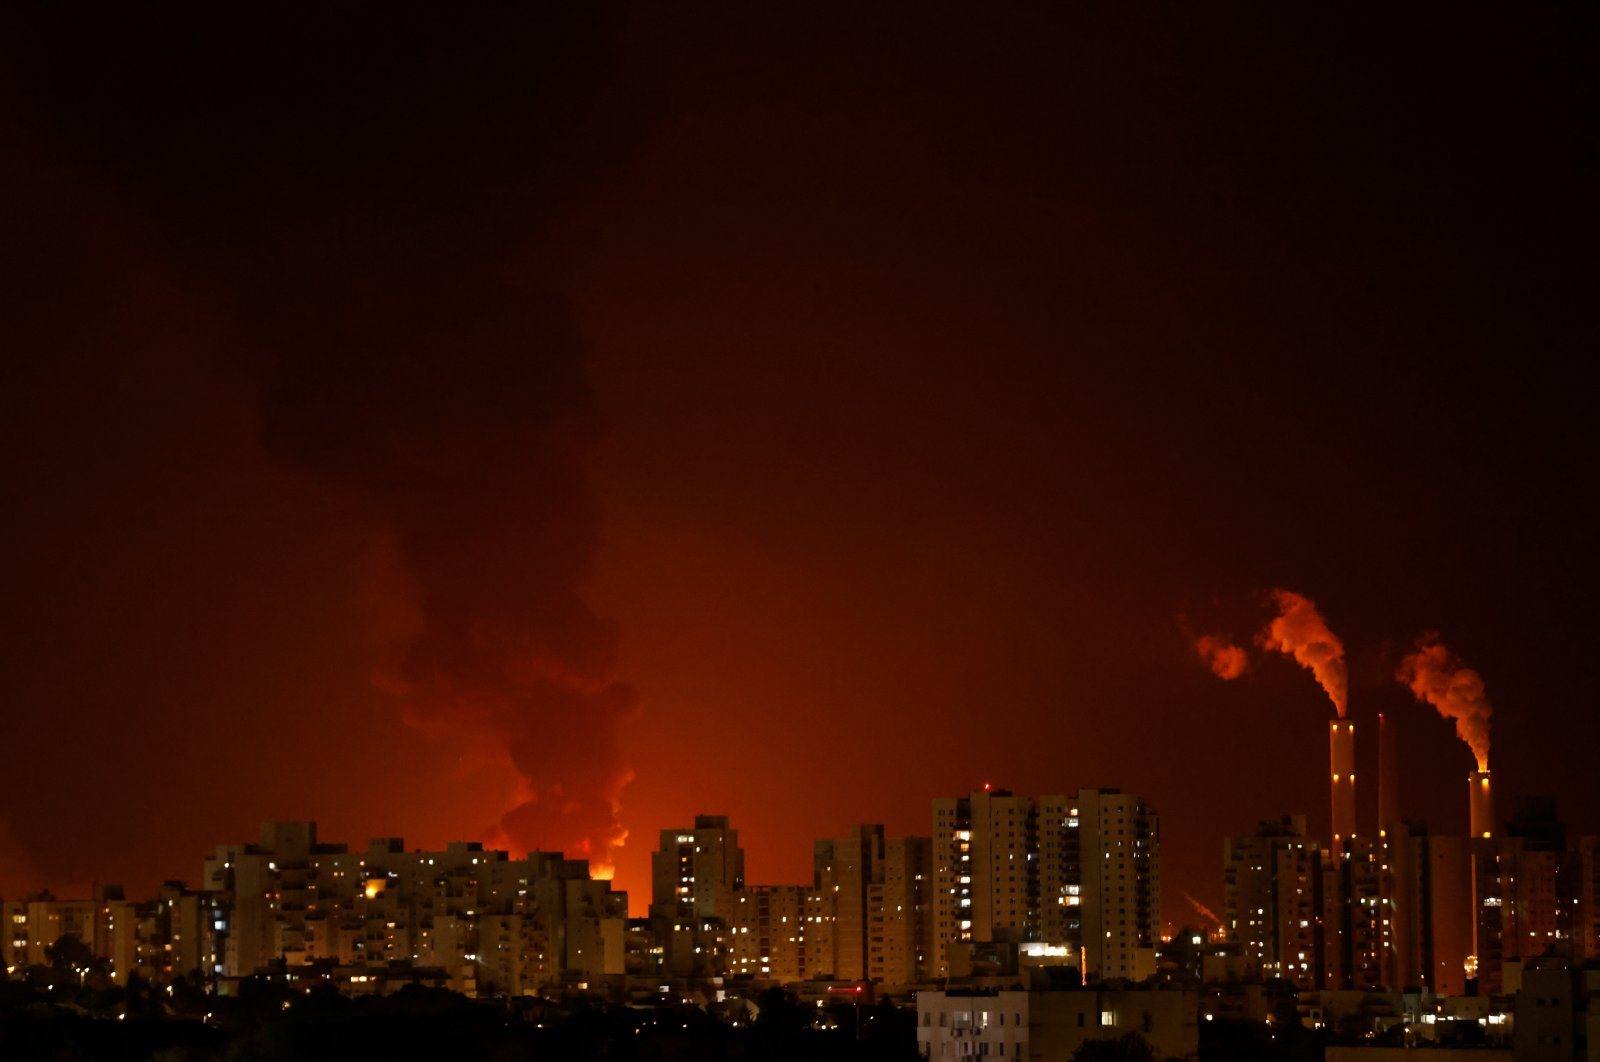 A general view shows residential buildings with large fire and smoke in the background, where officials said that a Gaza rocket hit an Israeli energy pipeline near Ashkelon, Israel, May 11, 2021. (Reuters Photo)